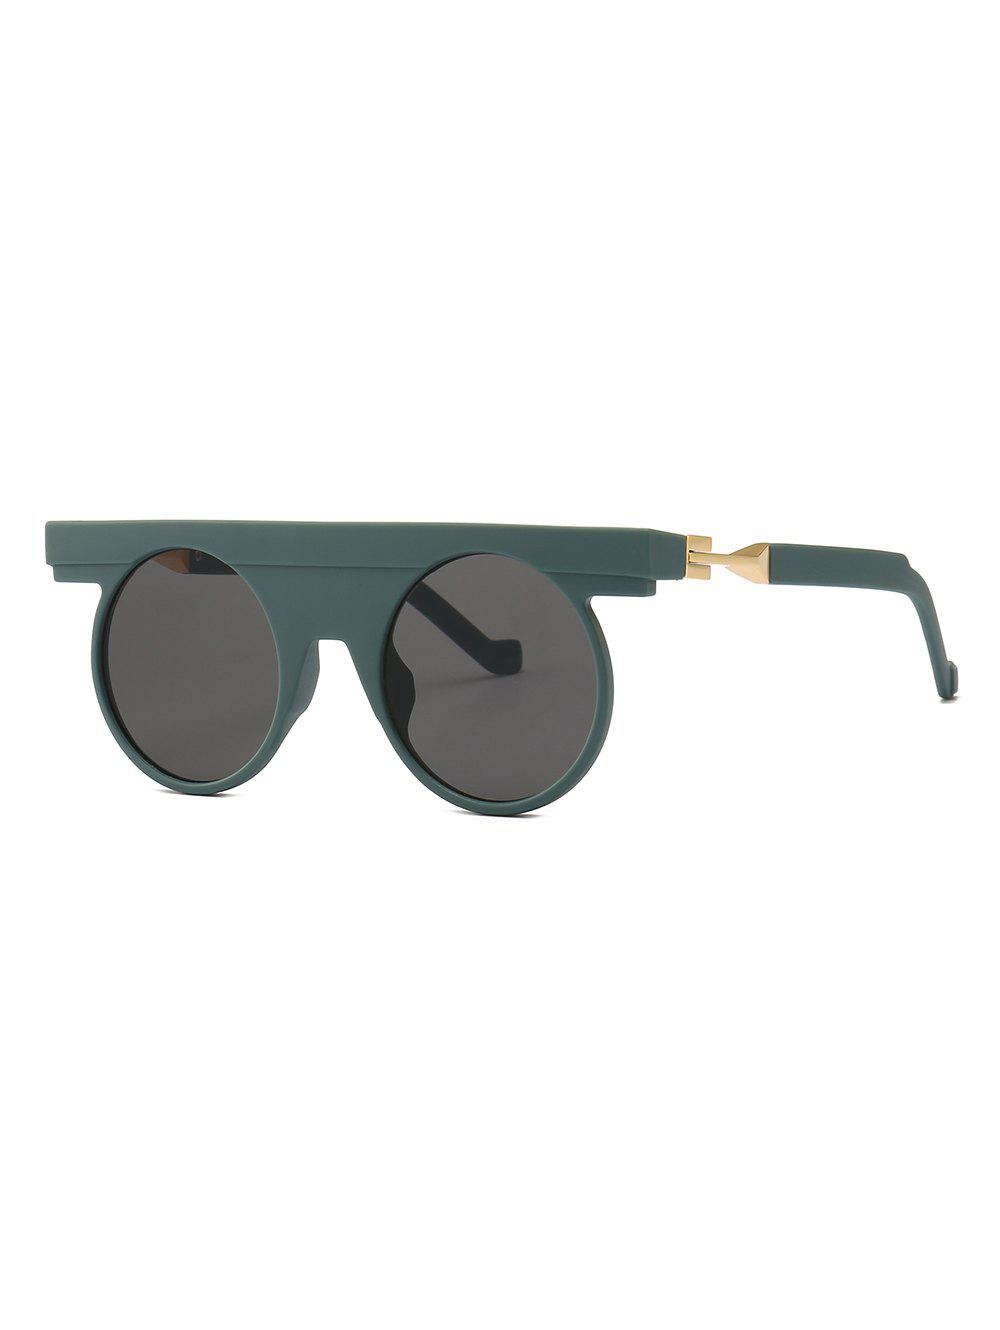 Affordable Round Design Simple Style Sunglasses